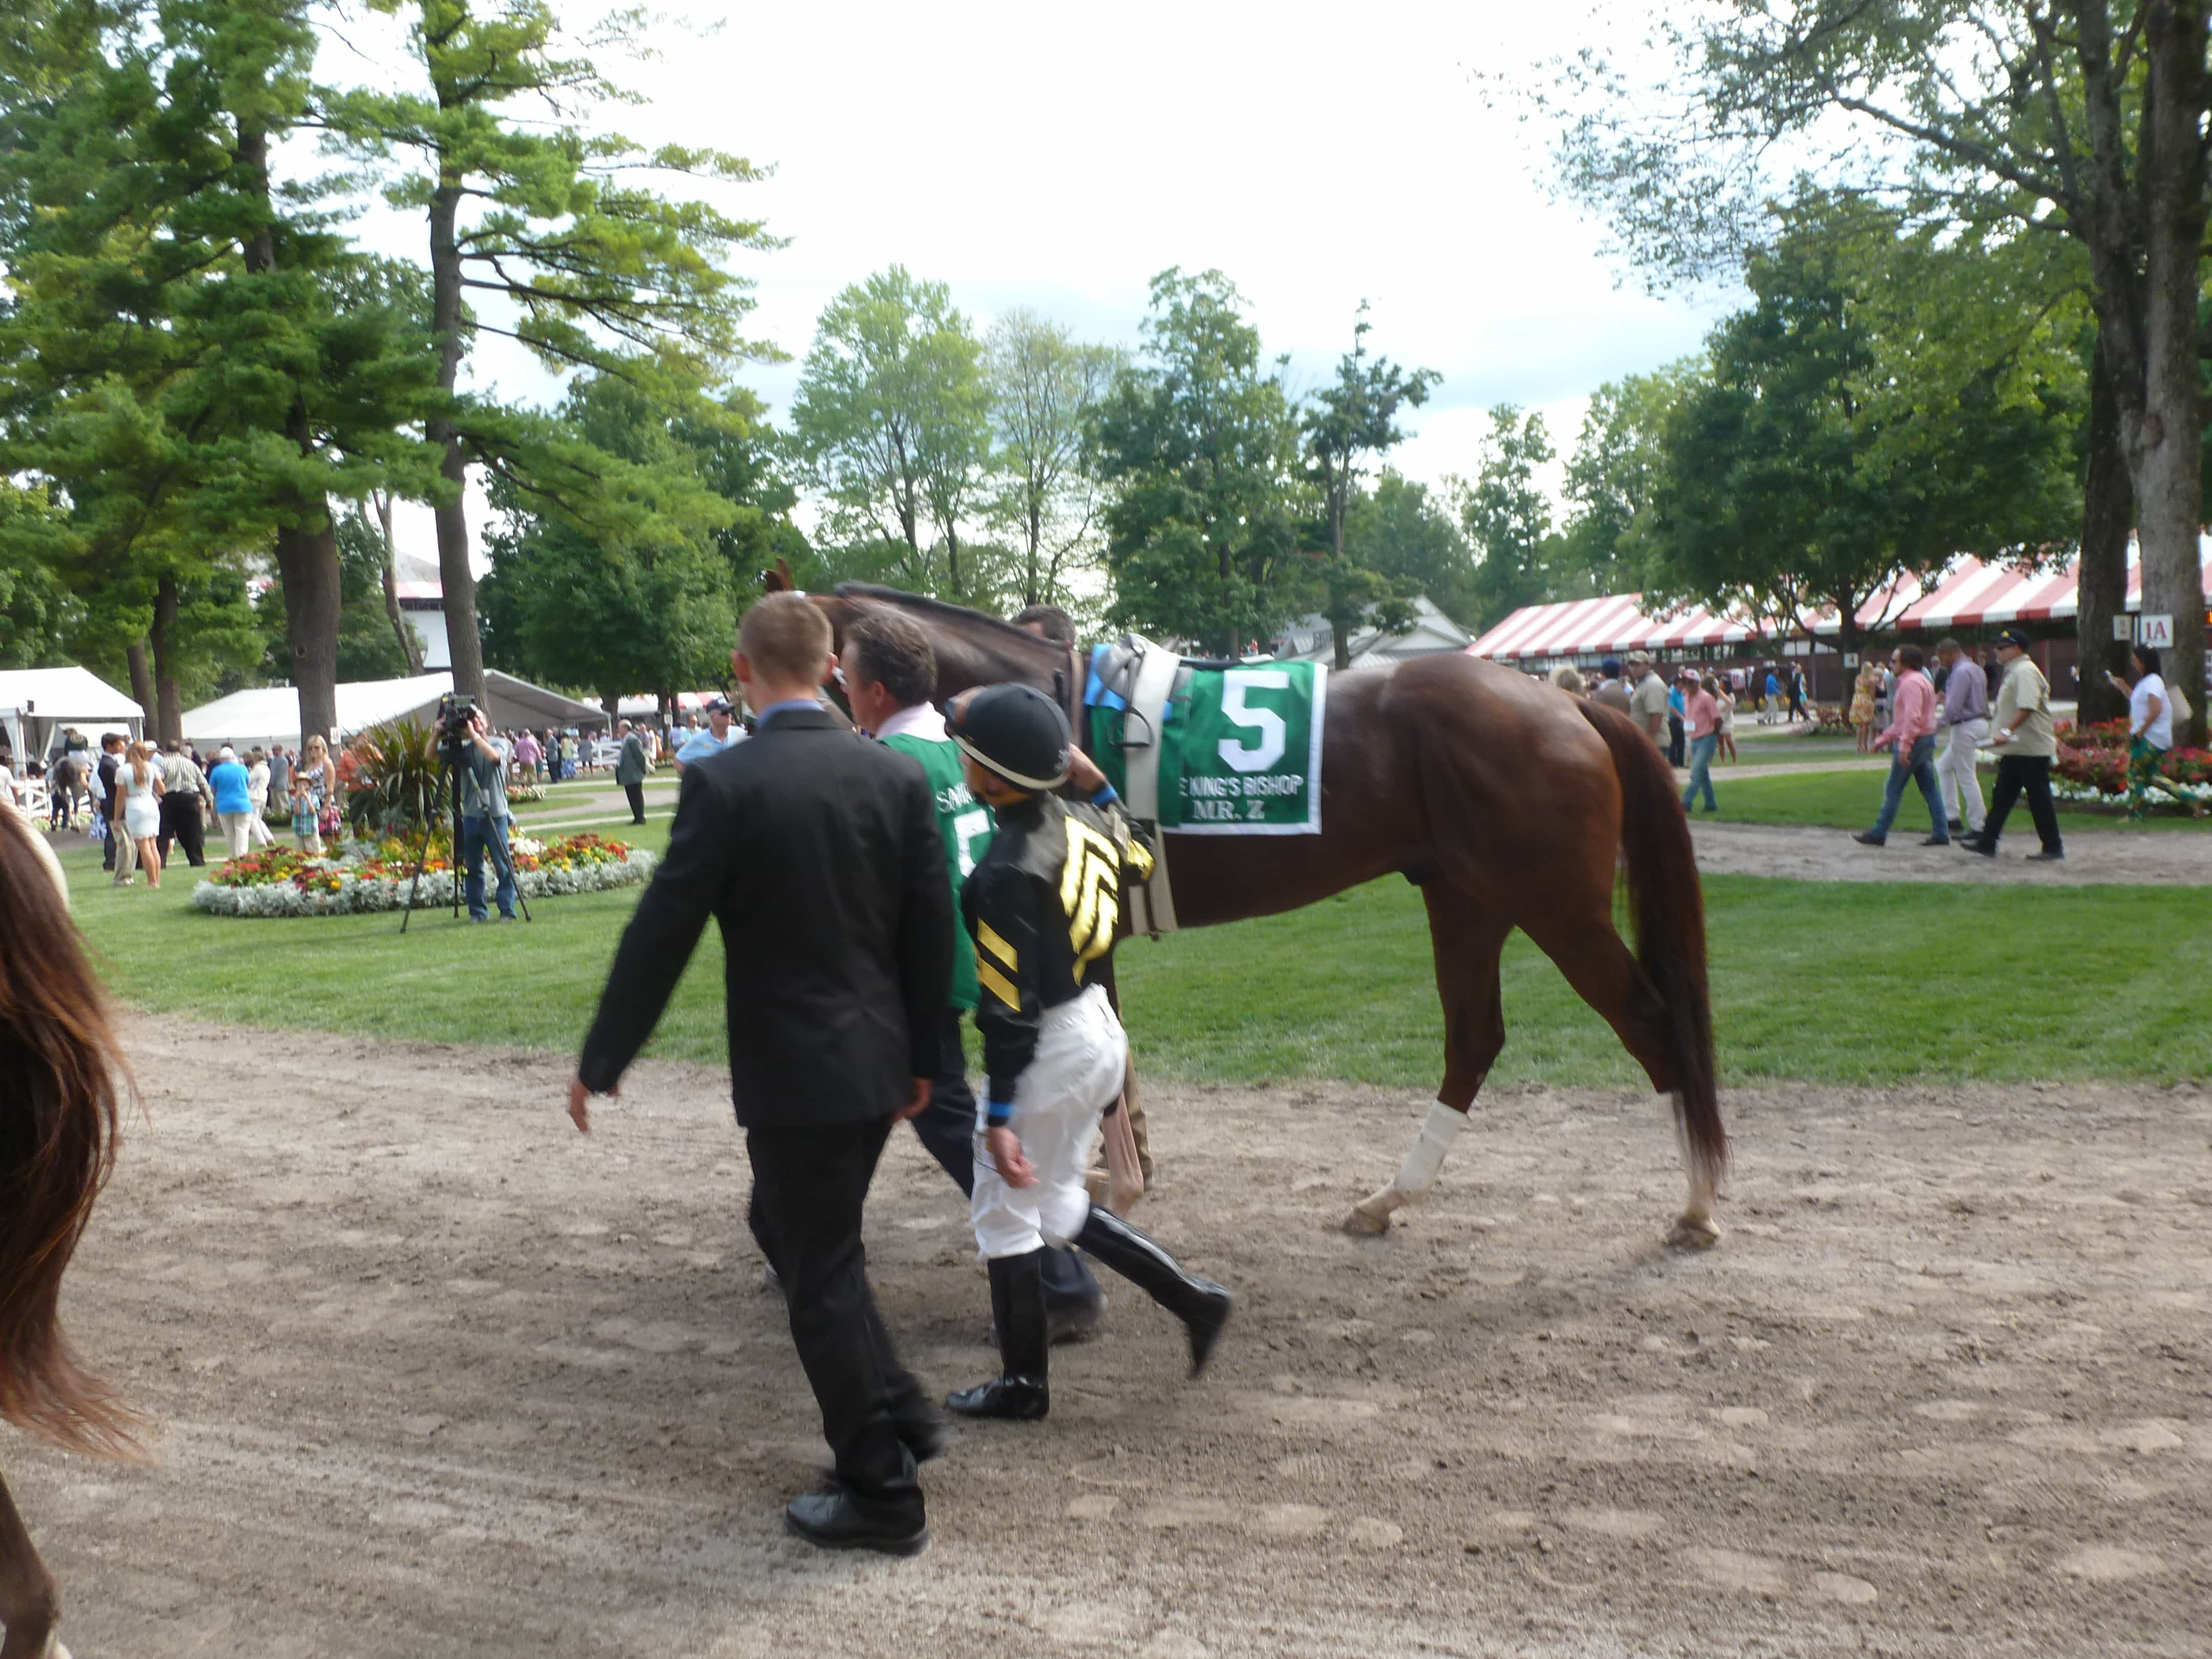 Mr. Z - KING'S BISHOP STAKES (Grade I) - 08-29-15 - R8 - SAR - Photo credit: Mike Spector (Follow him on Twitter @SaratogaSlim)